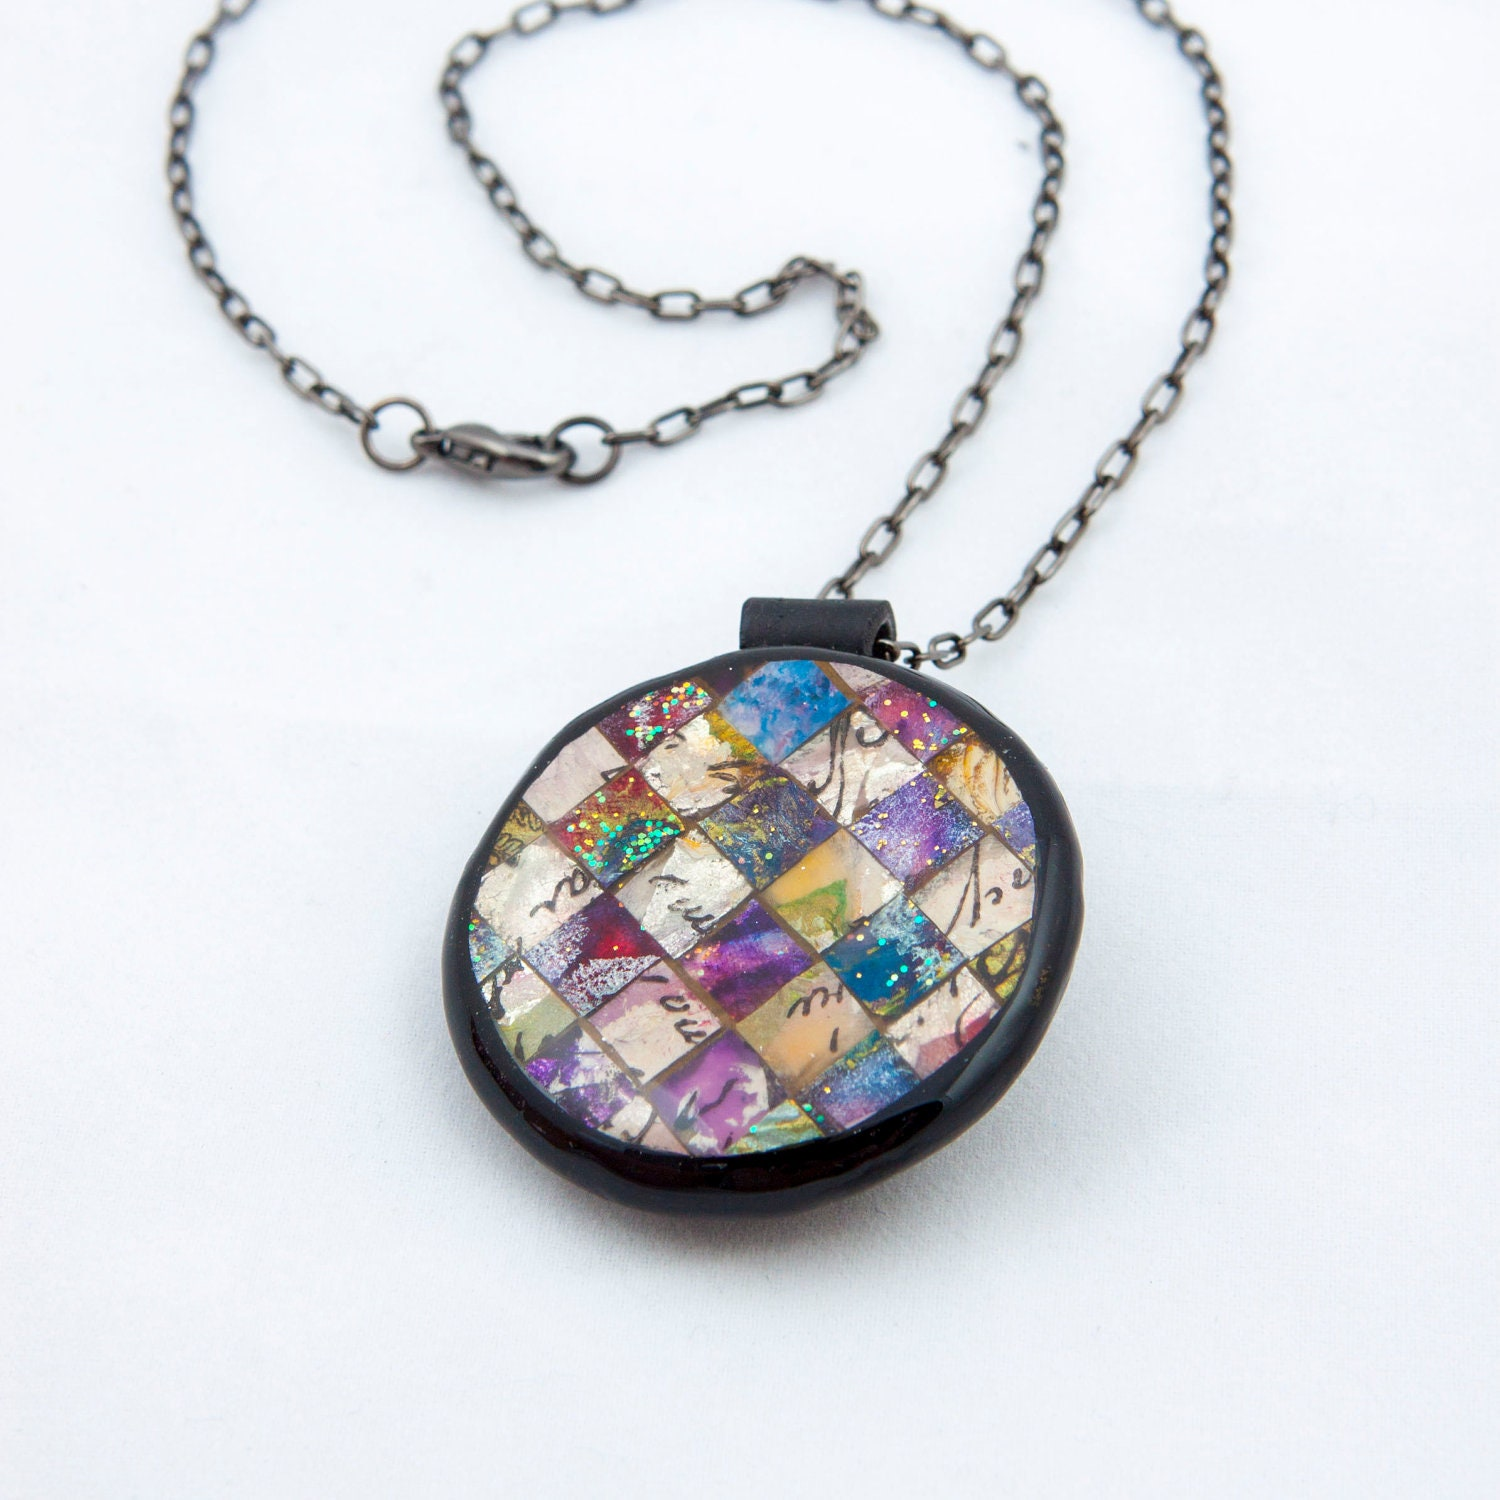 mosaic necklace colorful in shades of blue purple pearl